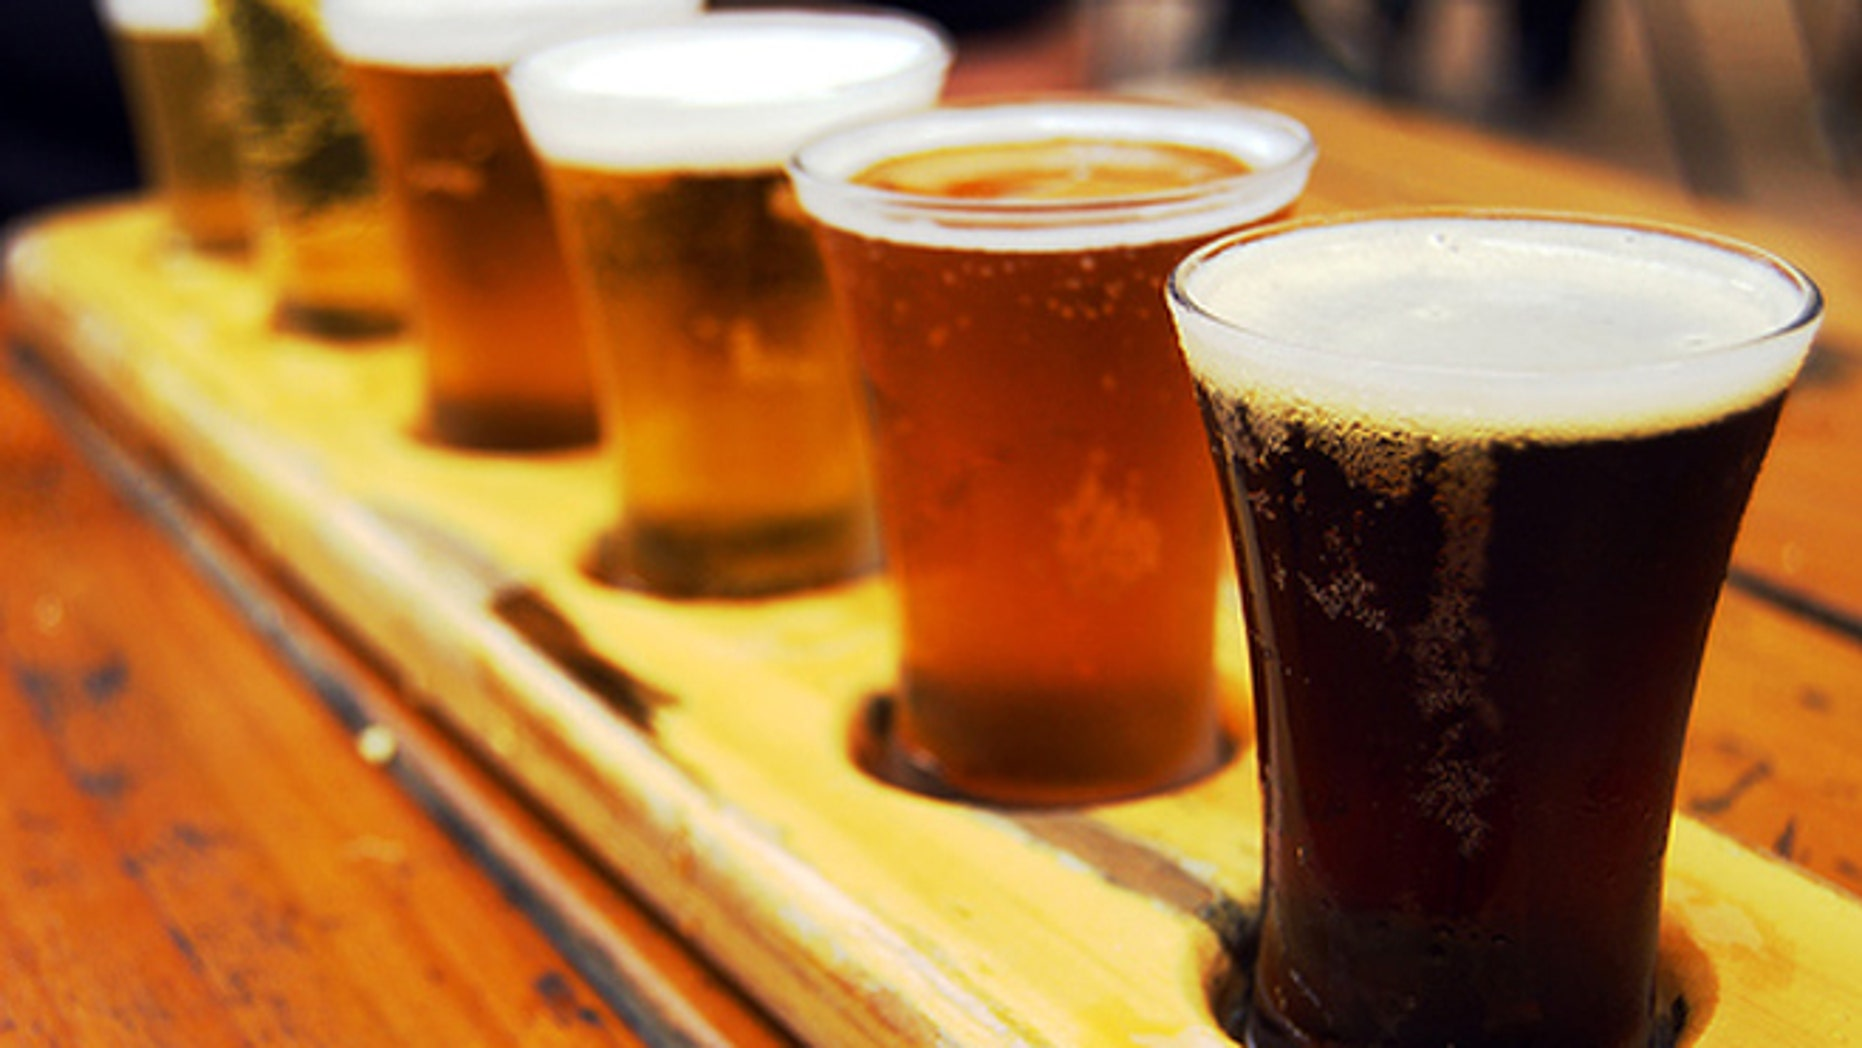 Some churches are using craft beer as a way to bring together parishioners.